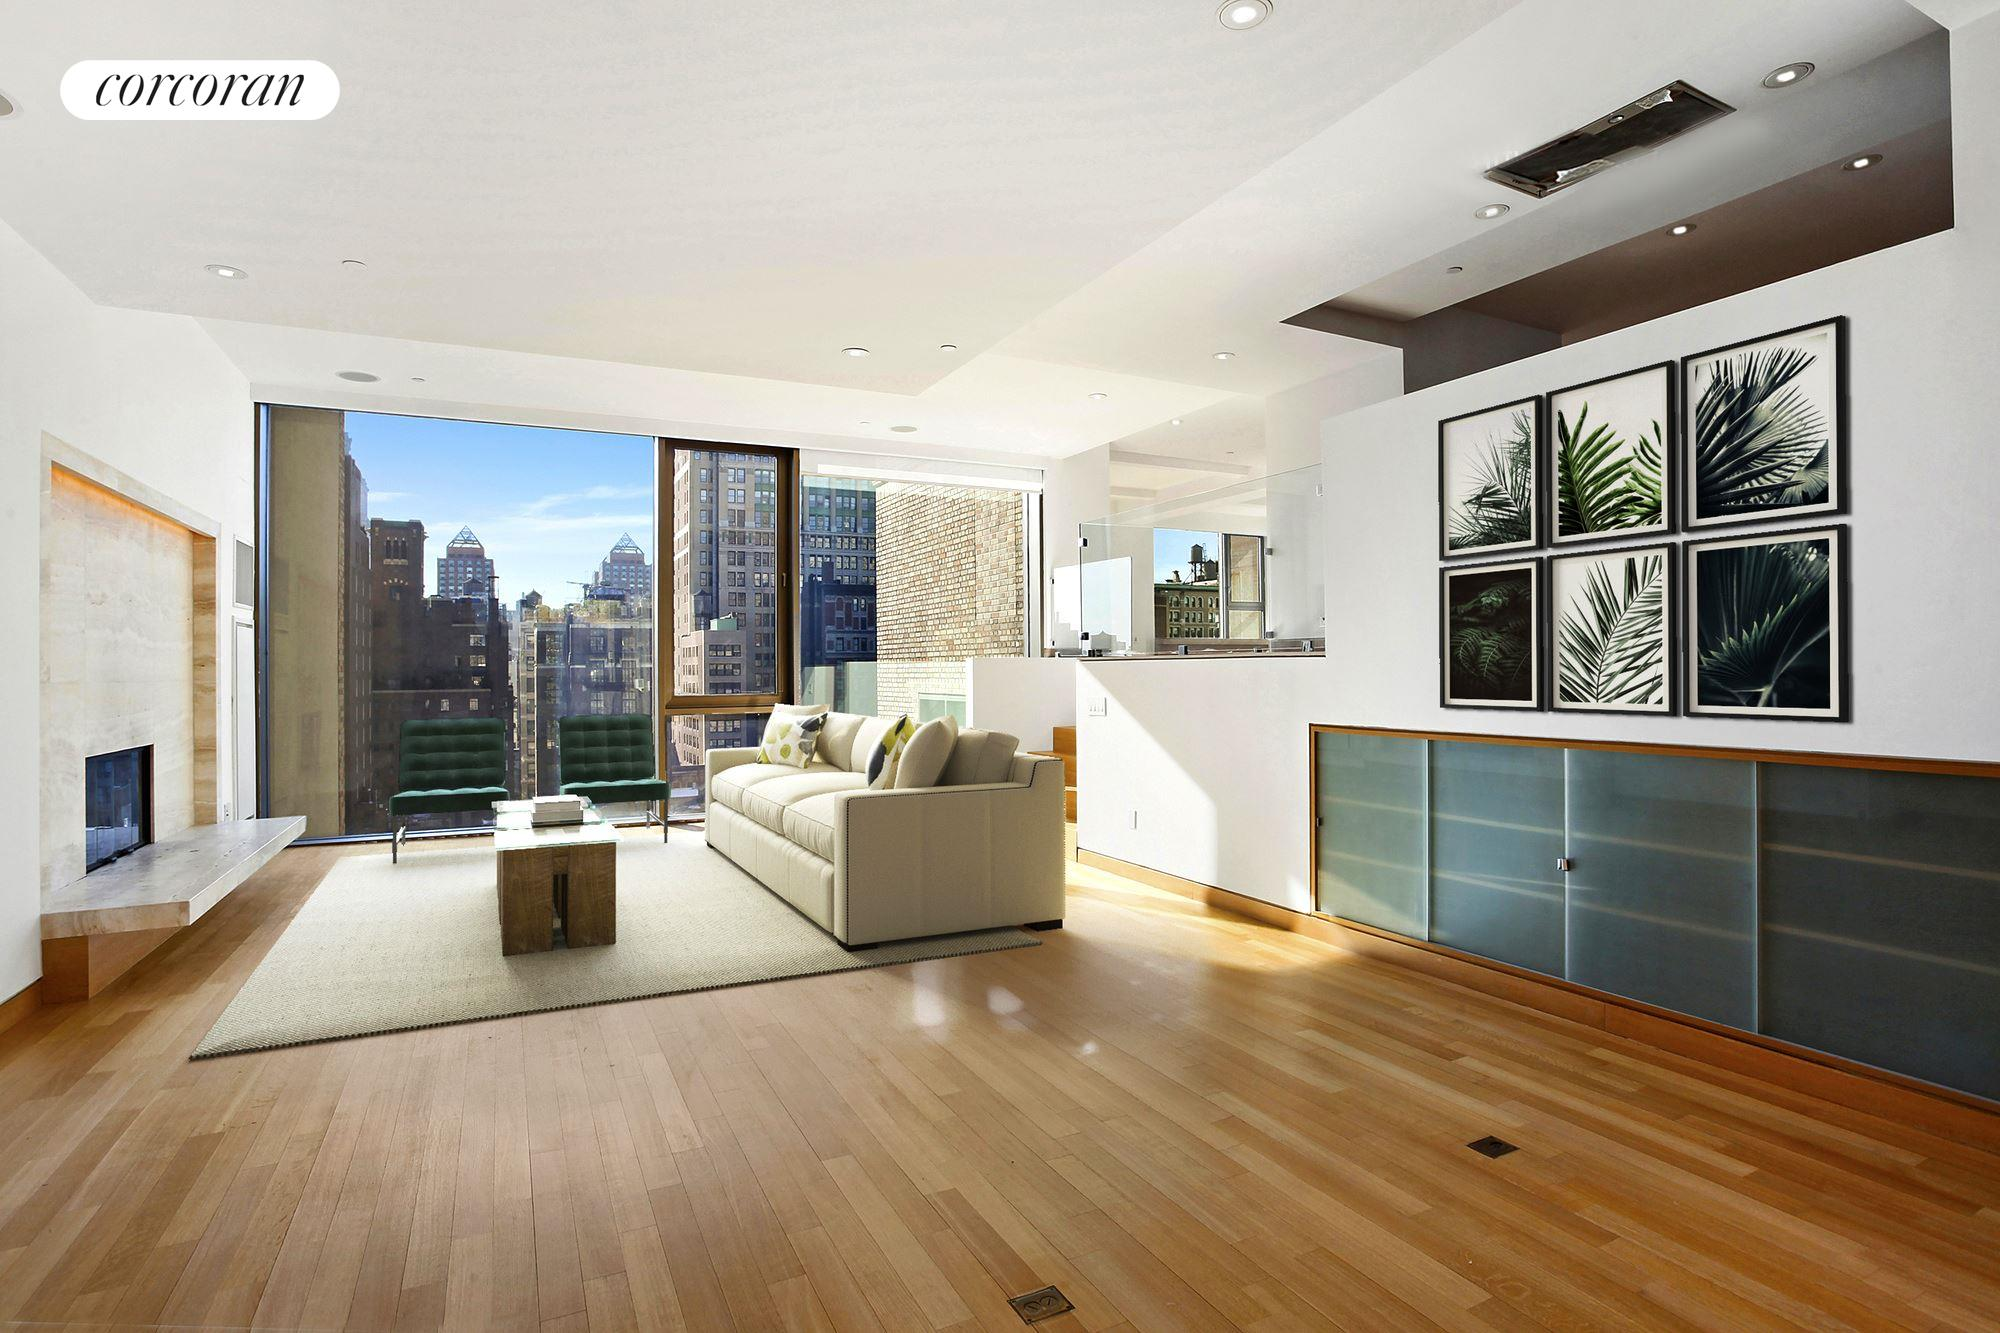 Condop for Sale at 50 Gramercy Park North 15-AB 50 Gramercy Park North New York, New York 10010 United States